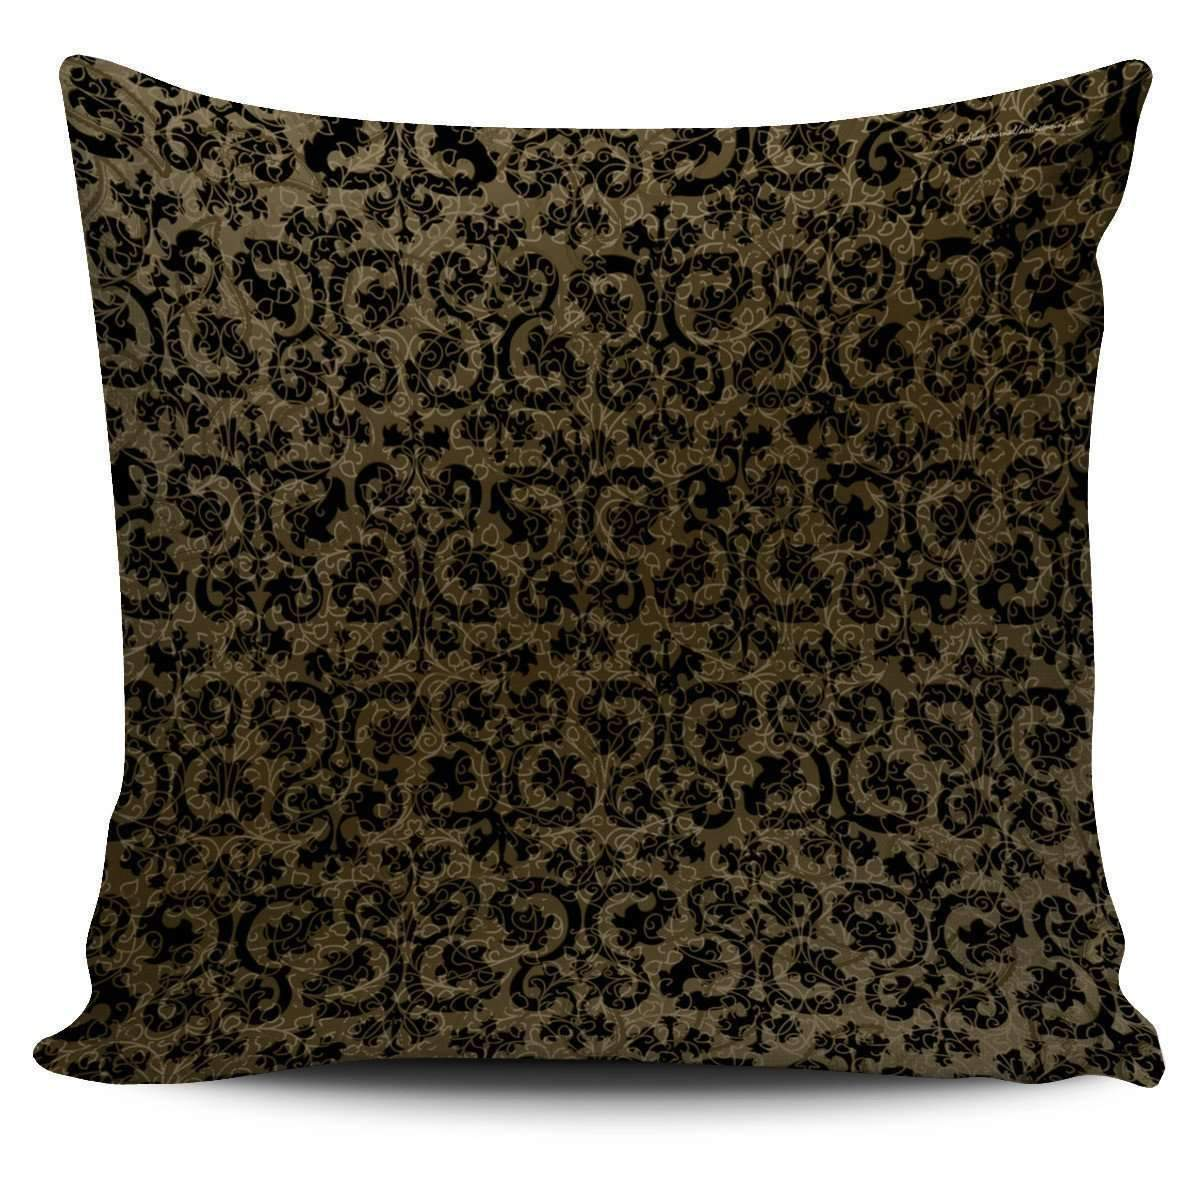 Classical - Pillow Covers-Classical - Vintage-PP.1513496-Shopeholic